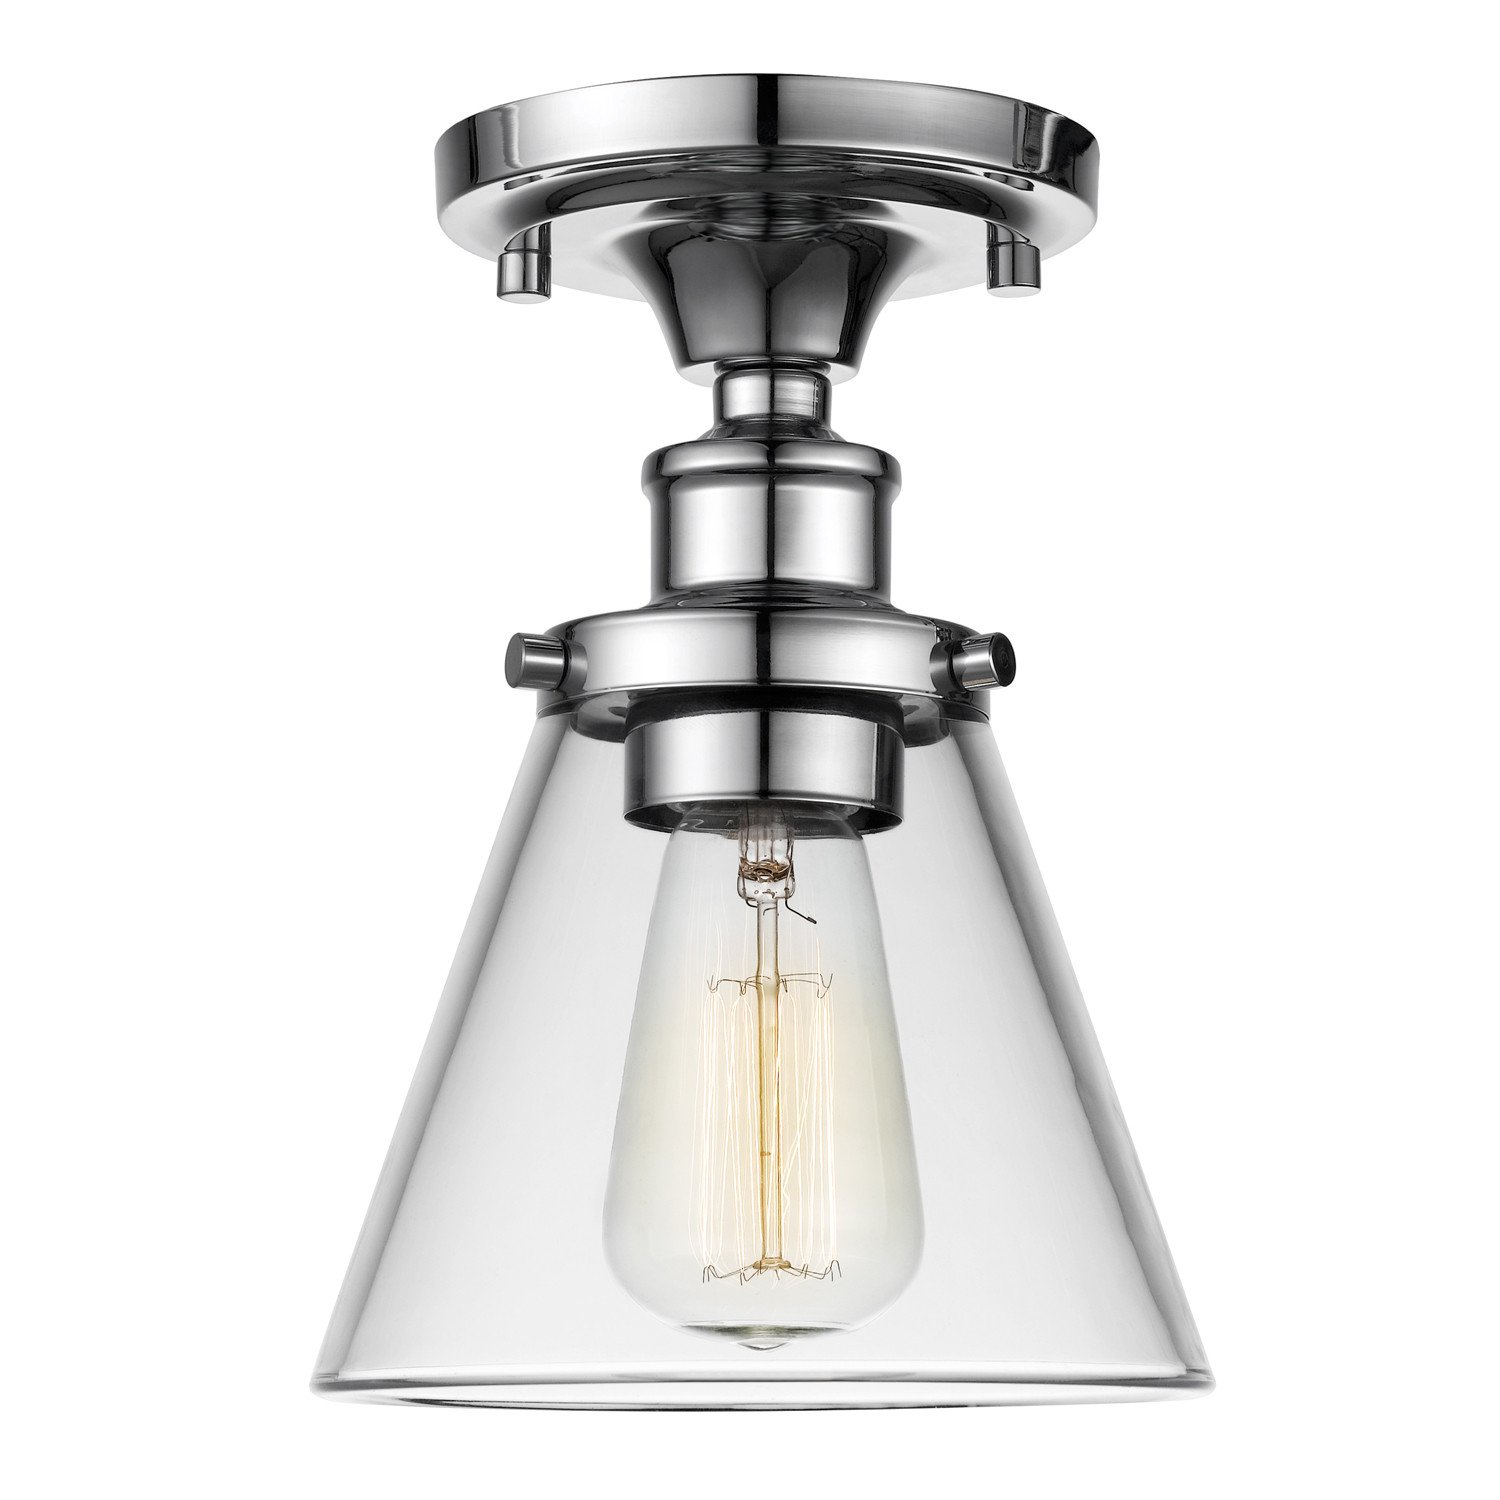 Best Rated In Ceiling Light Fixtures Helpful Customer Reviews Wiring Schematic For Cans Globe Electric 65726 Mercer 1 Flush Mount Clear Glass Shade Chrome Finish